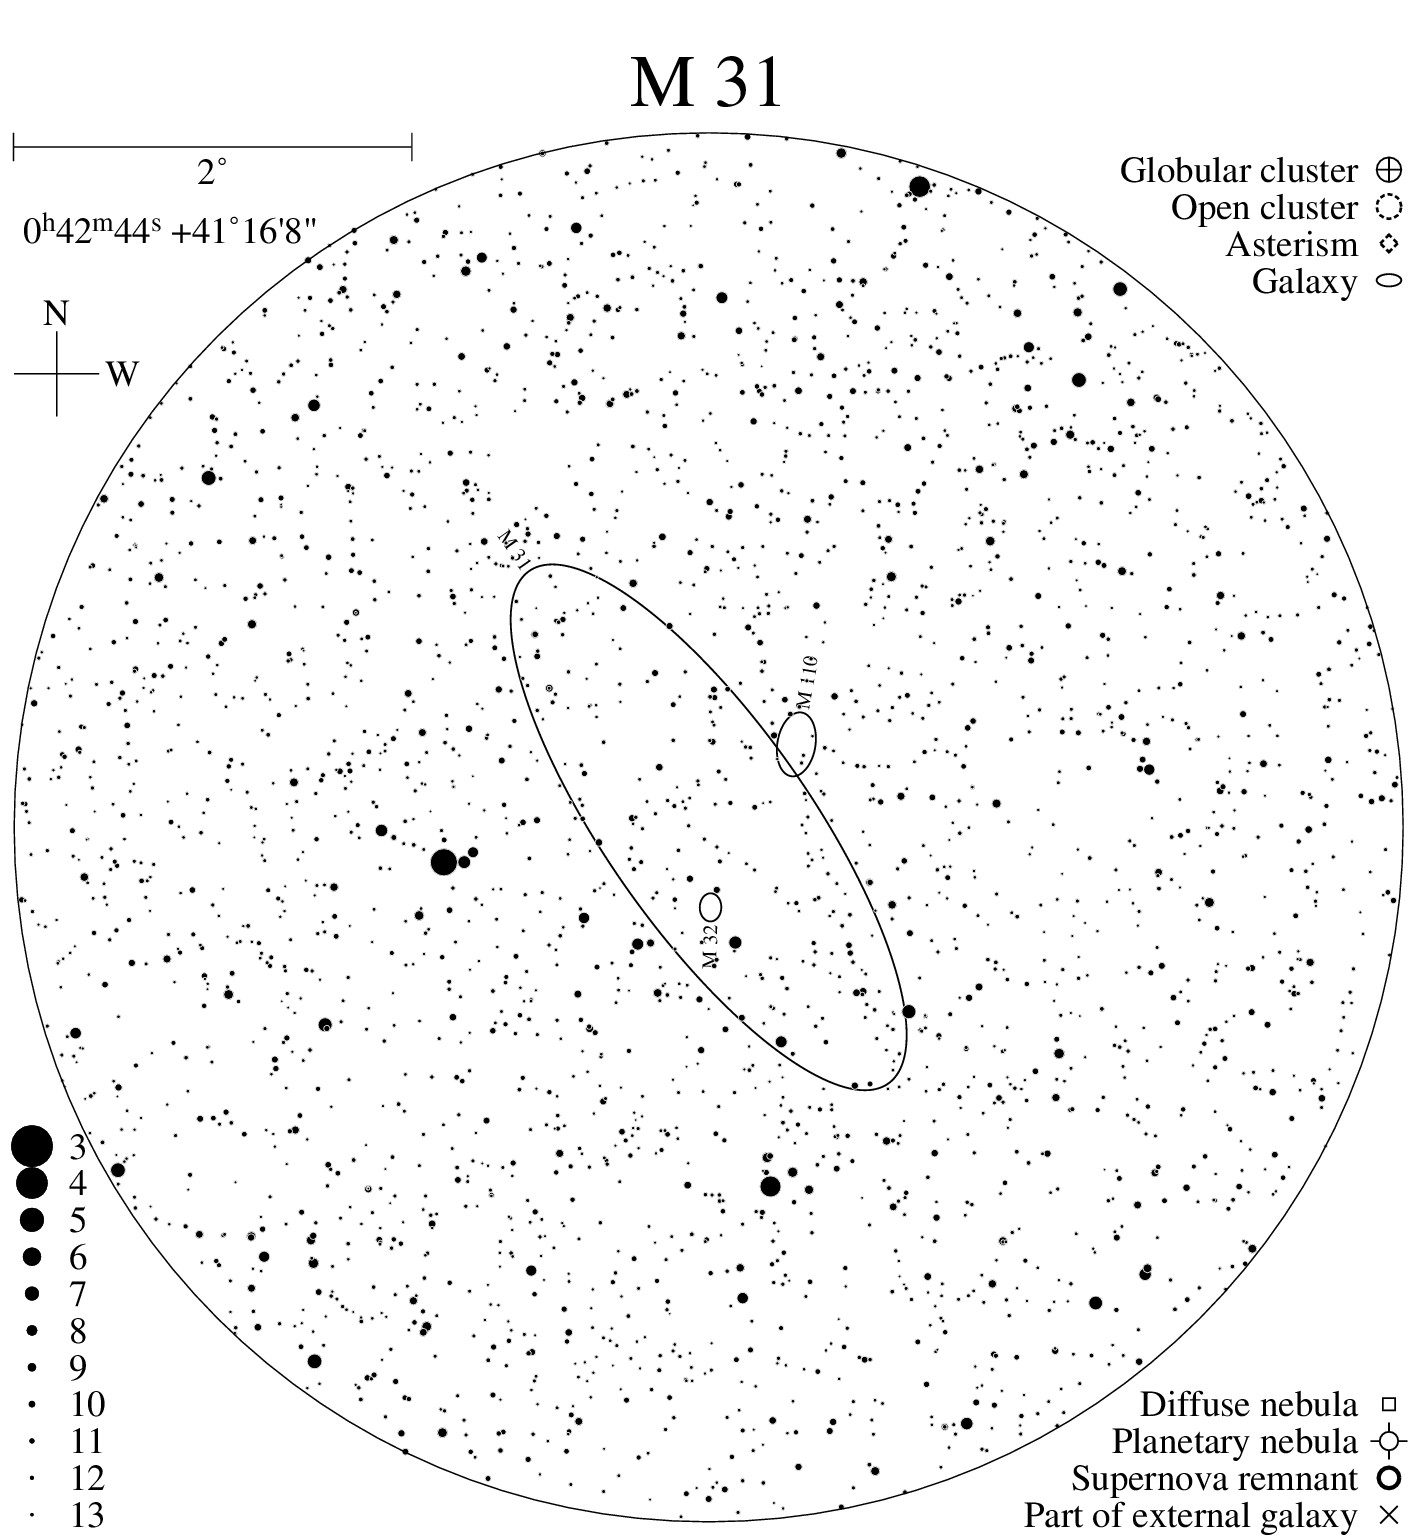 2015-02-25-creating-finder-charts-for-astronomy-using-fchart.markdown